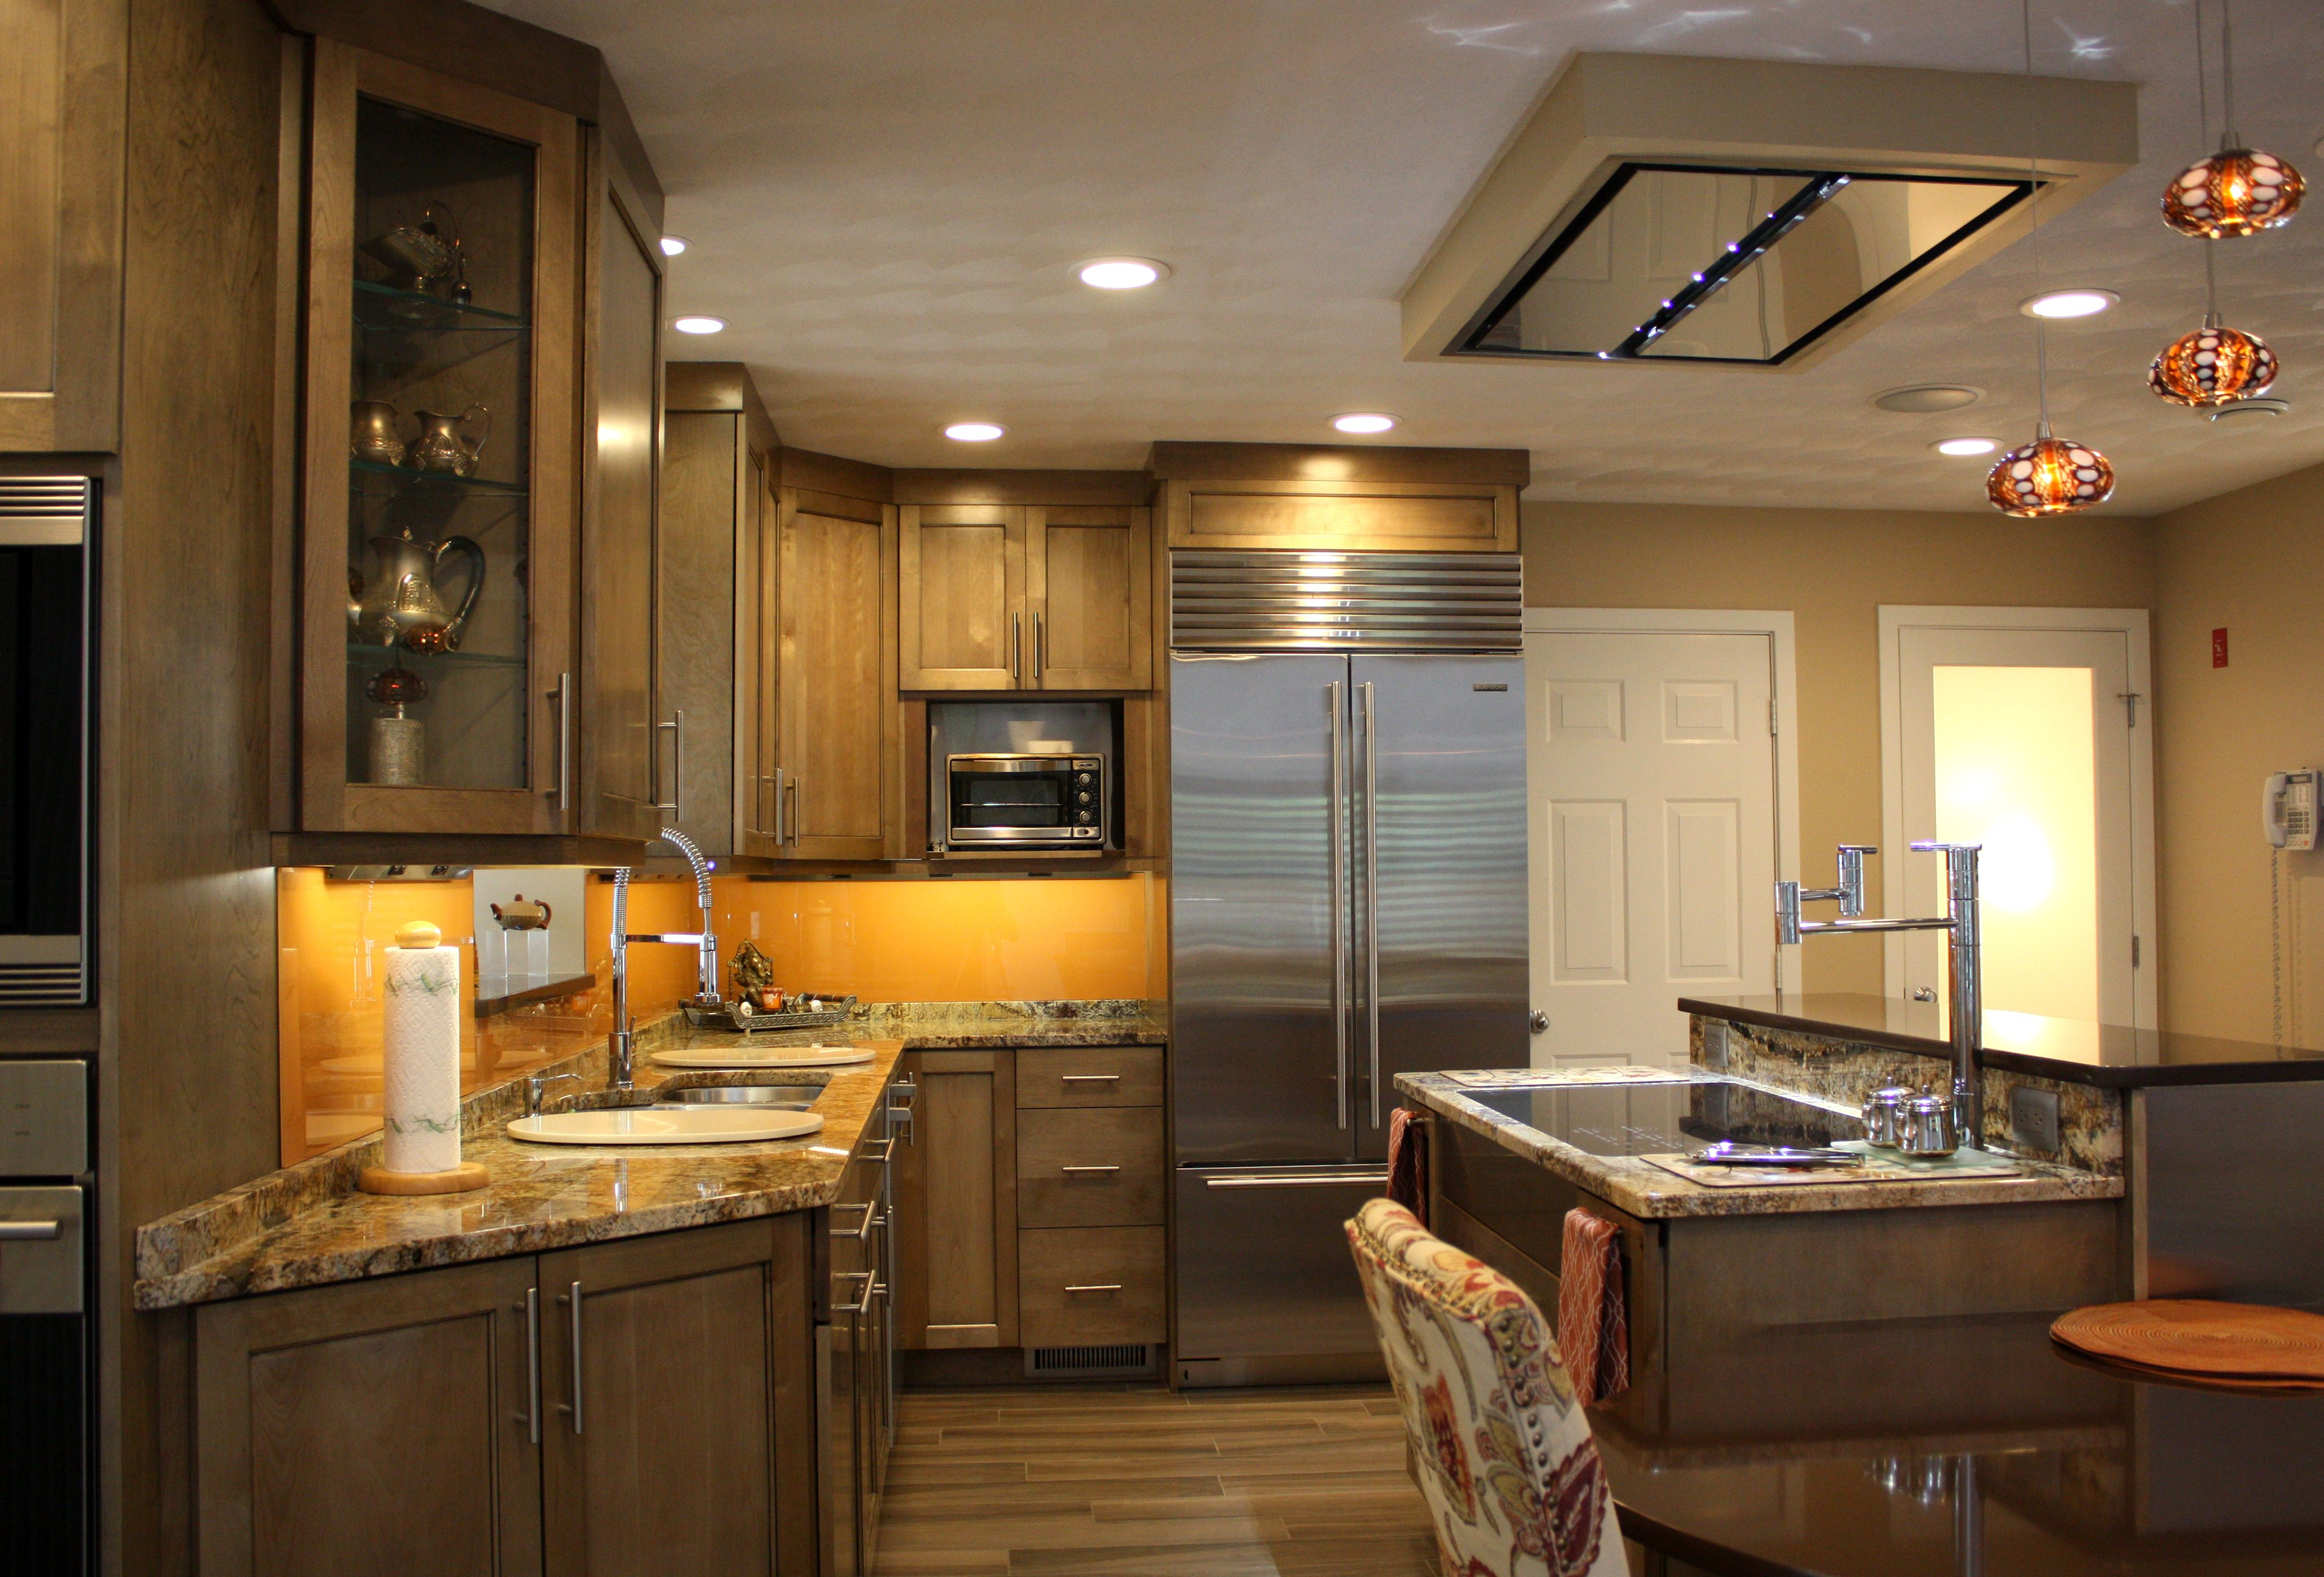 Transitional kitchen stainless steel appliances - Kitchen island with cooktop and seating ...